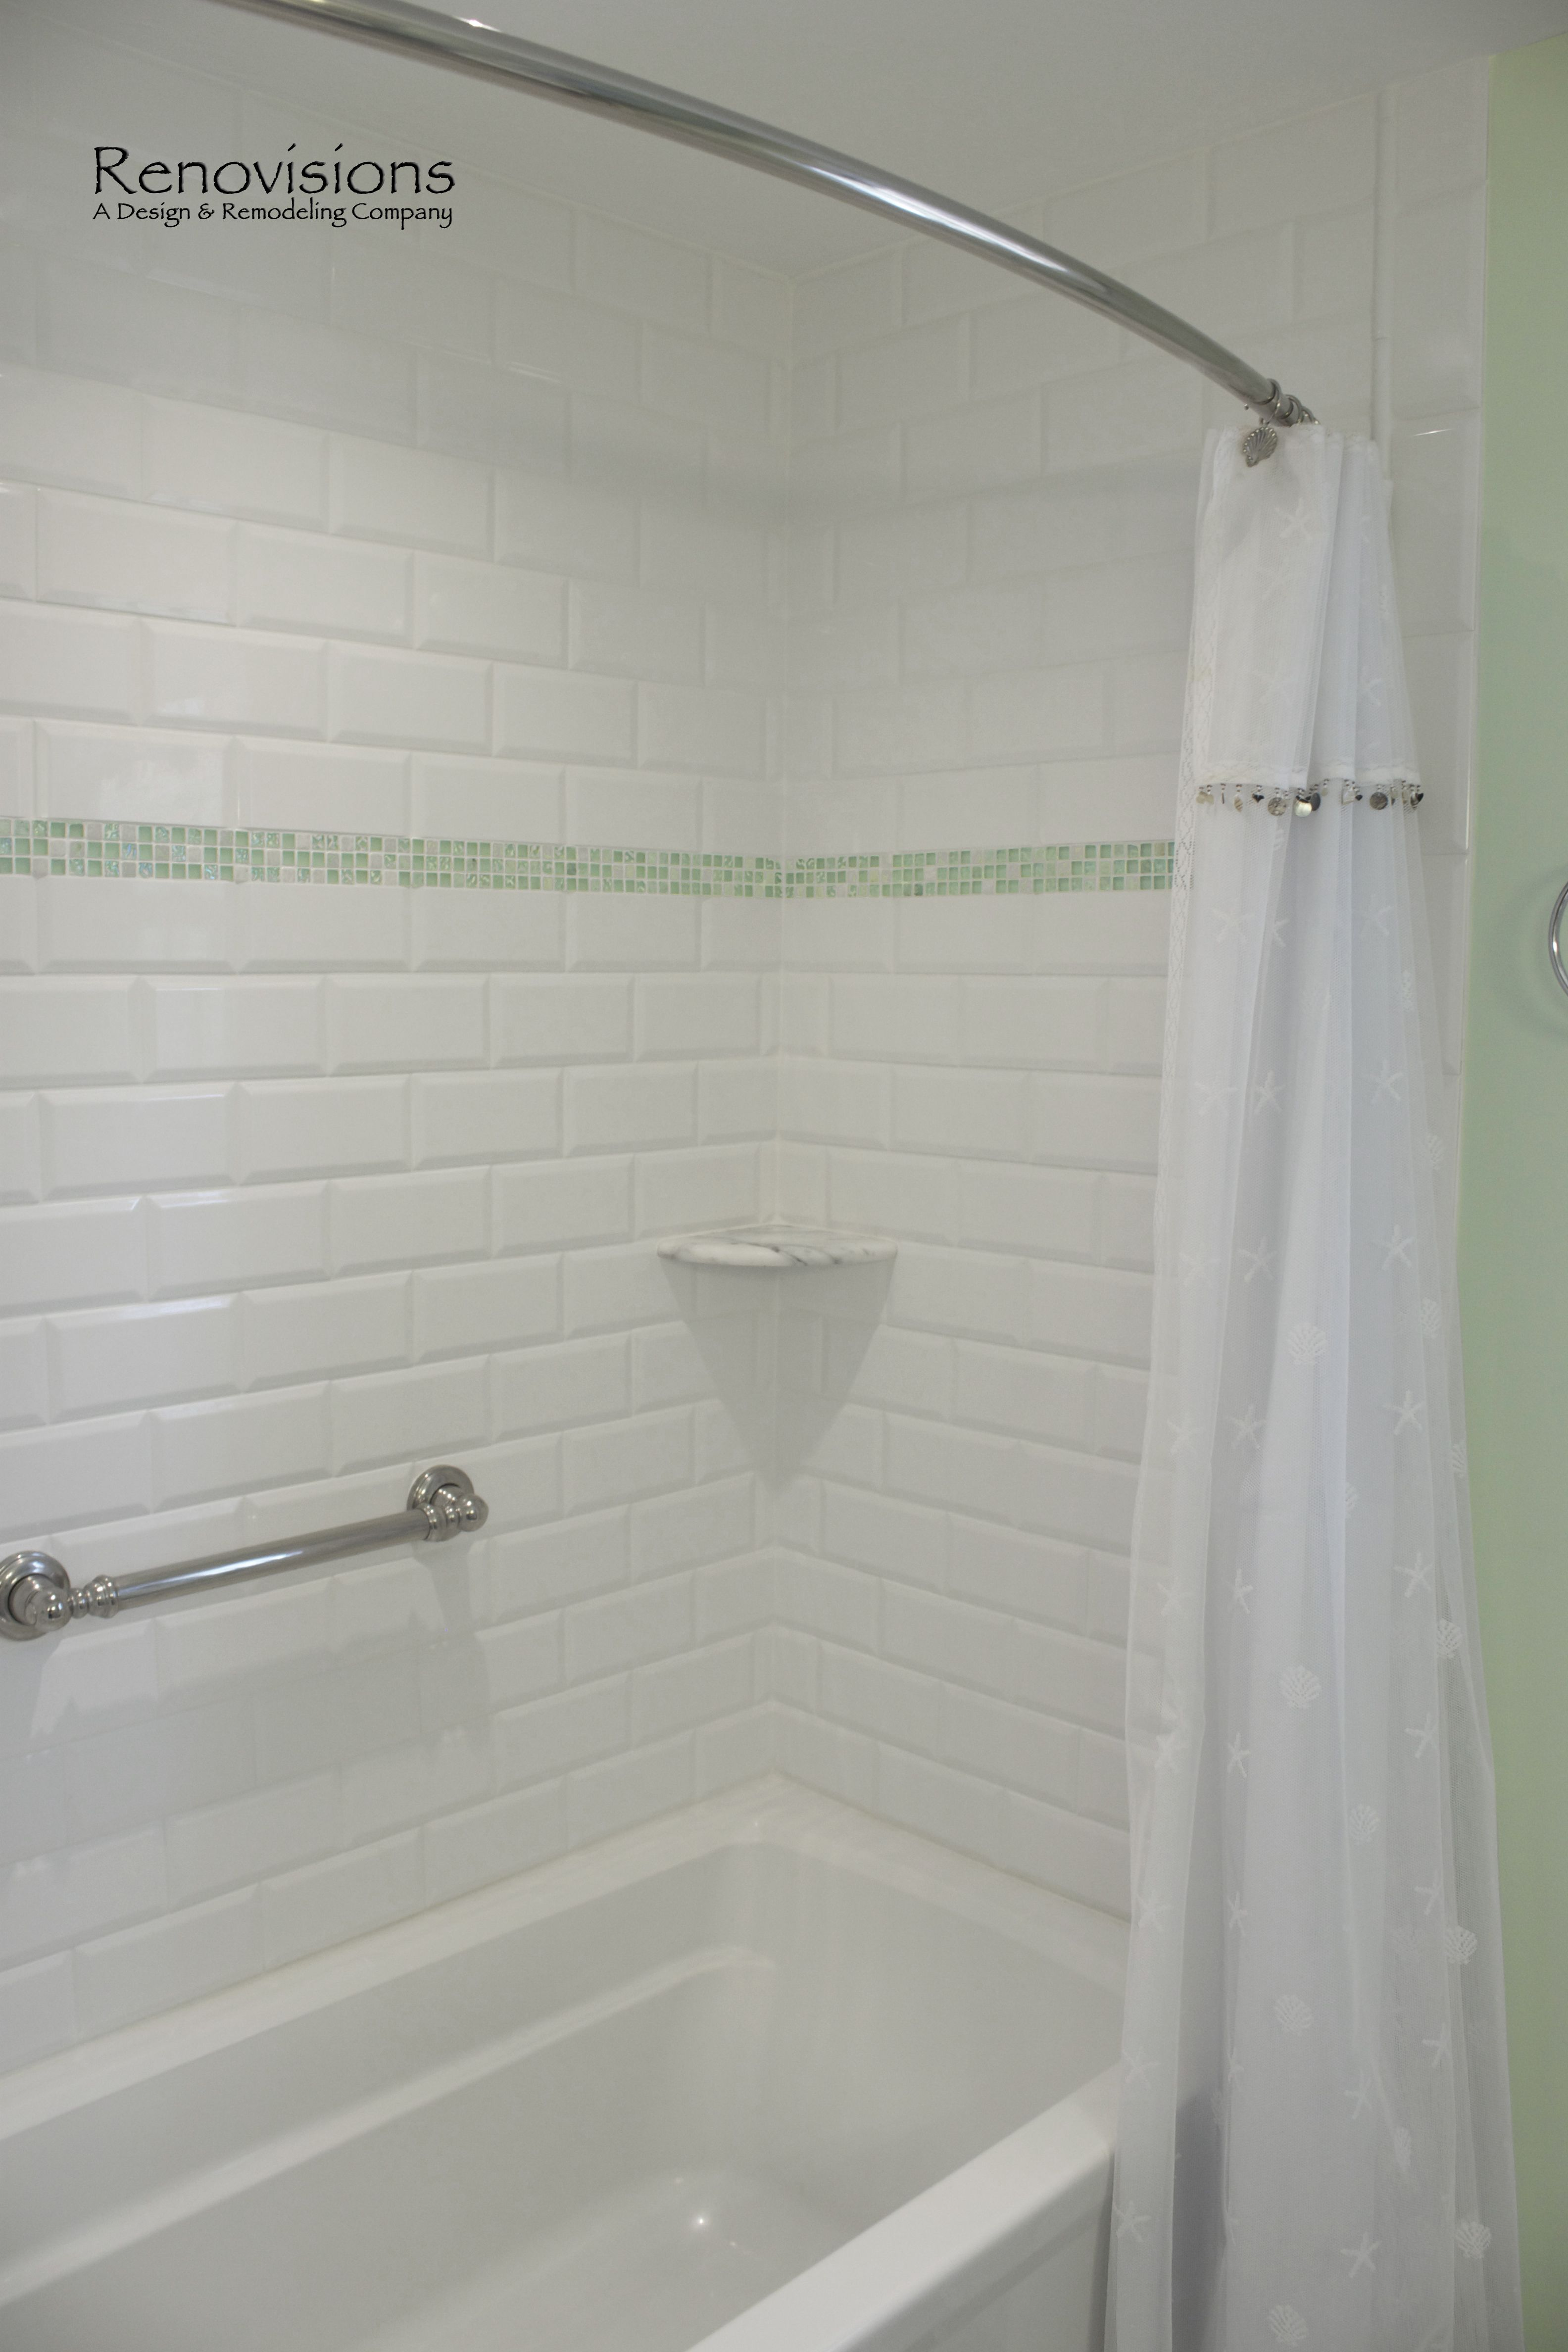 Bathroom Remodel By Renovisions Beveled Subway Tile Decorative Sea Gl Border Curved Shower Rod